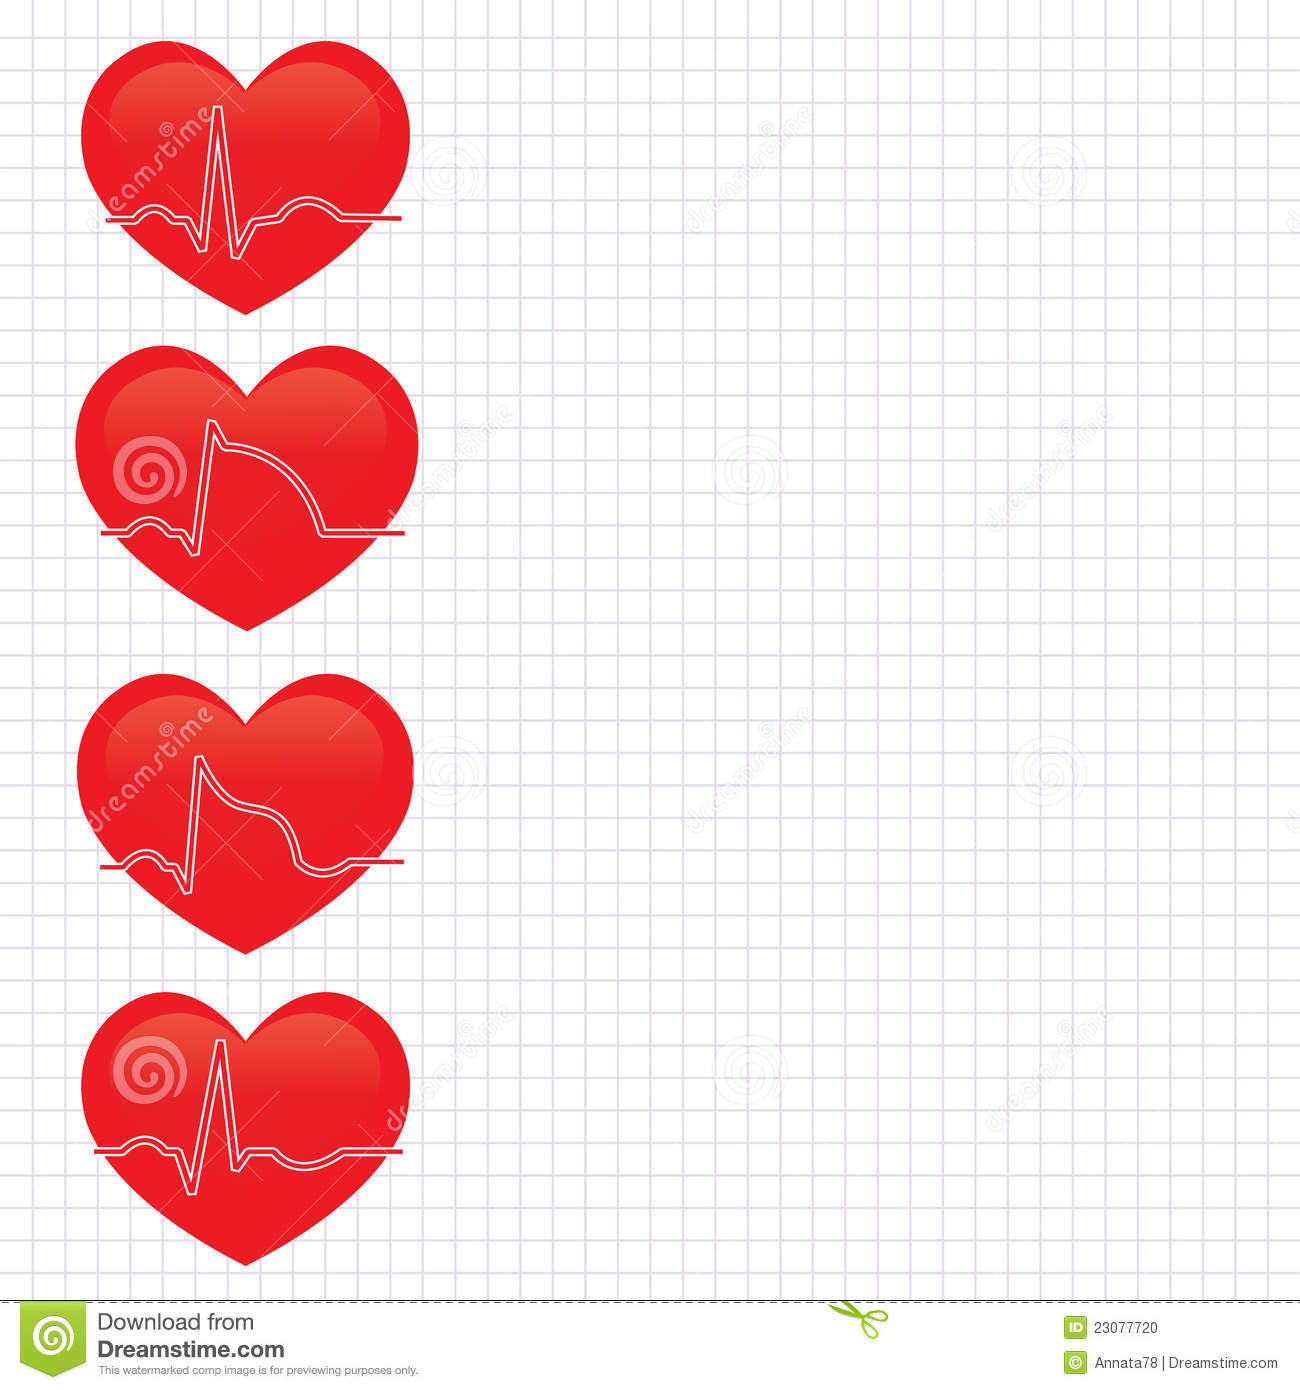 Stage Of Myocardial Infarction Stock Photo.